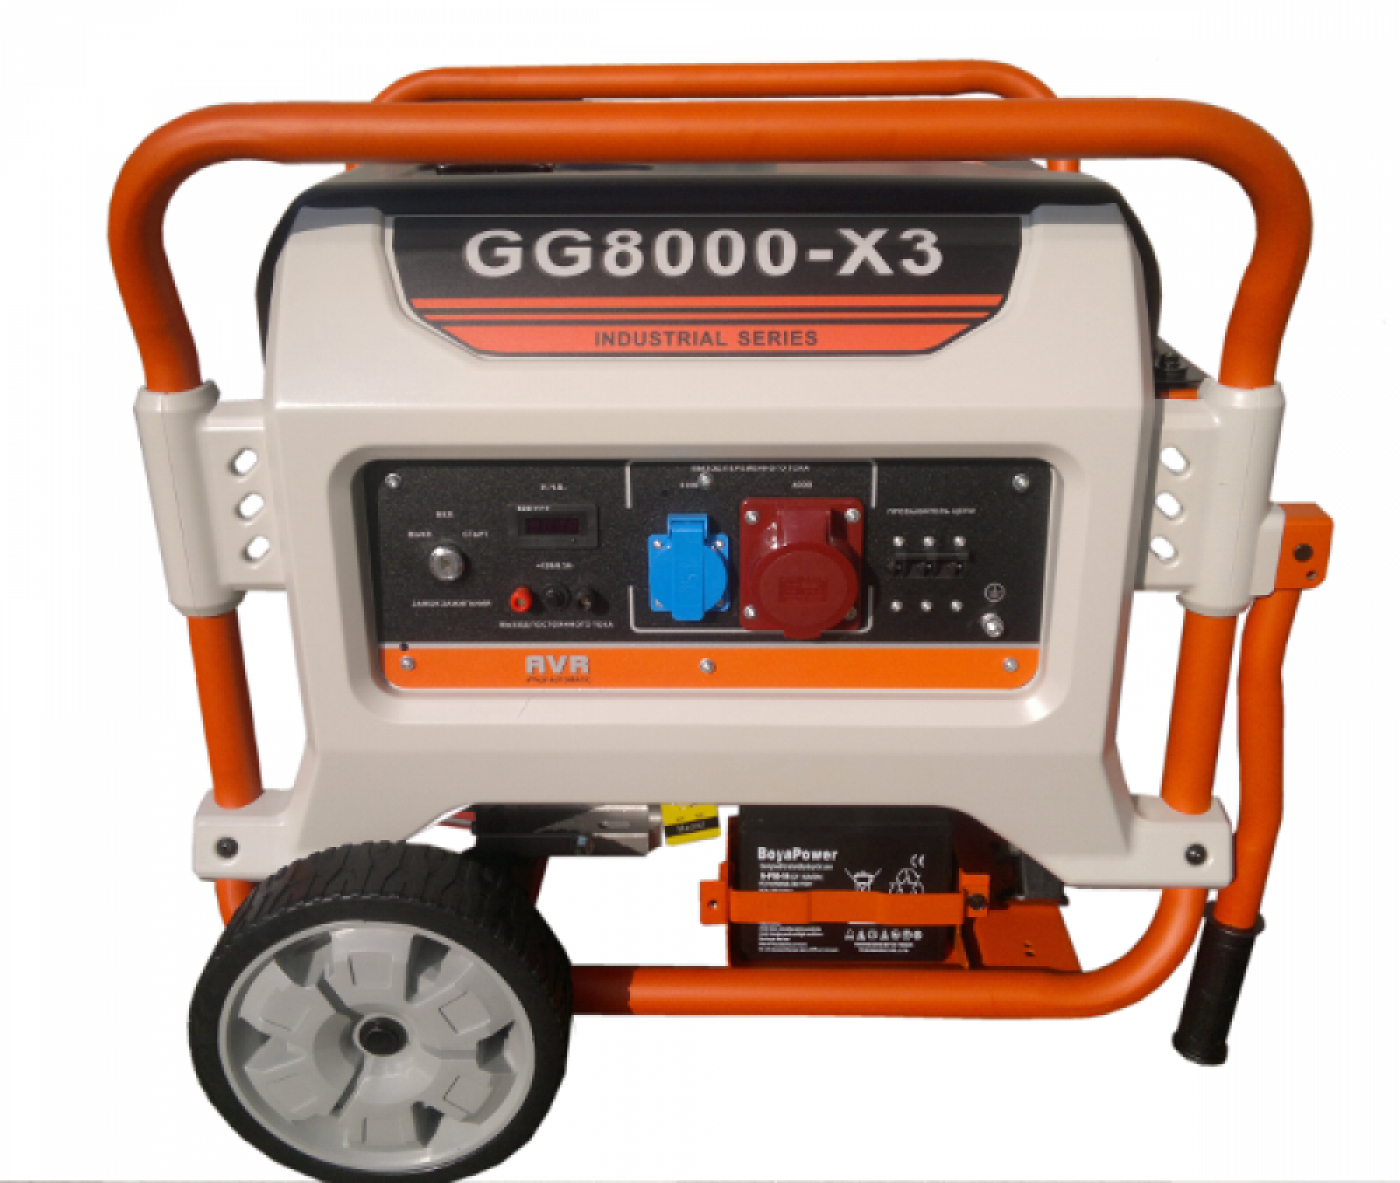 ������� ��������� Russian engineering group Gg8000-x3